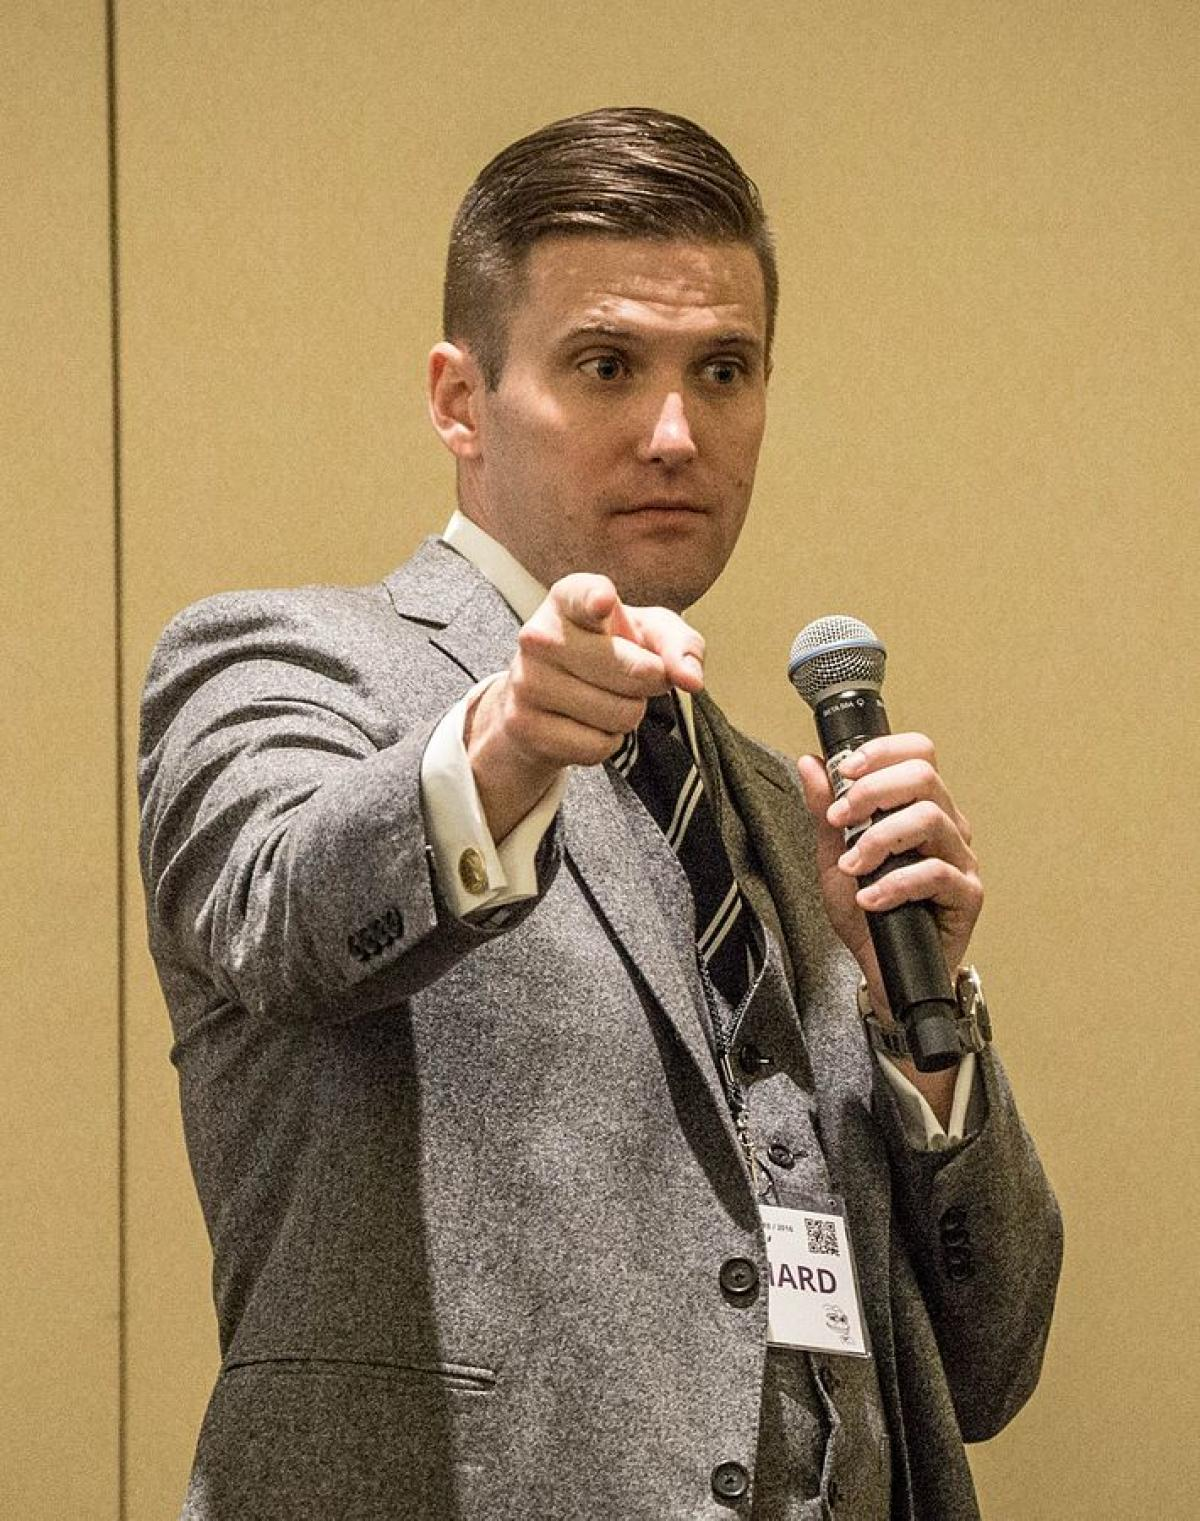 Richard Spencer neo-Nazi and white supremacist Identitarian The Mantle